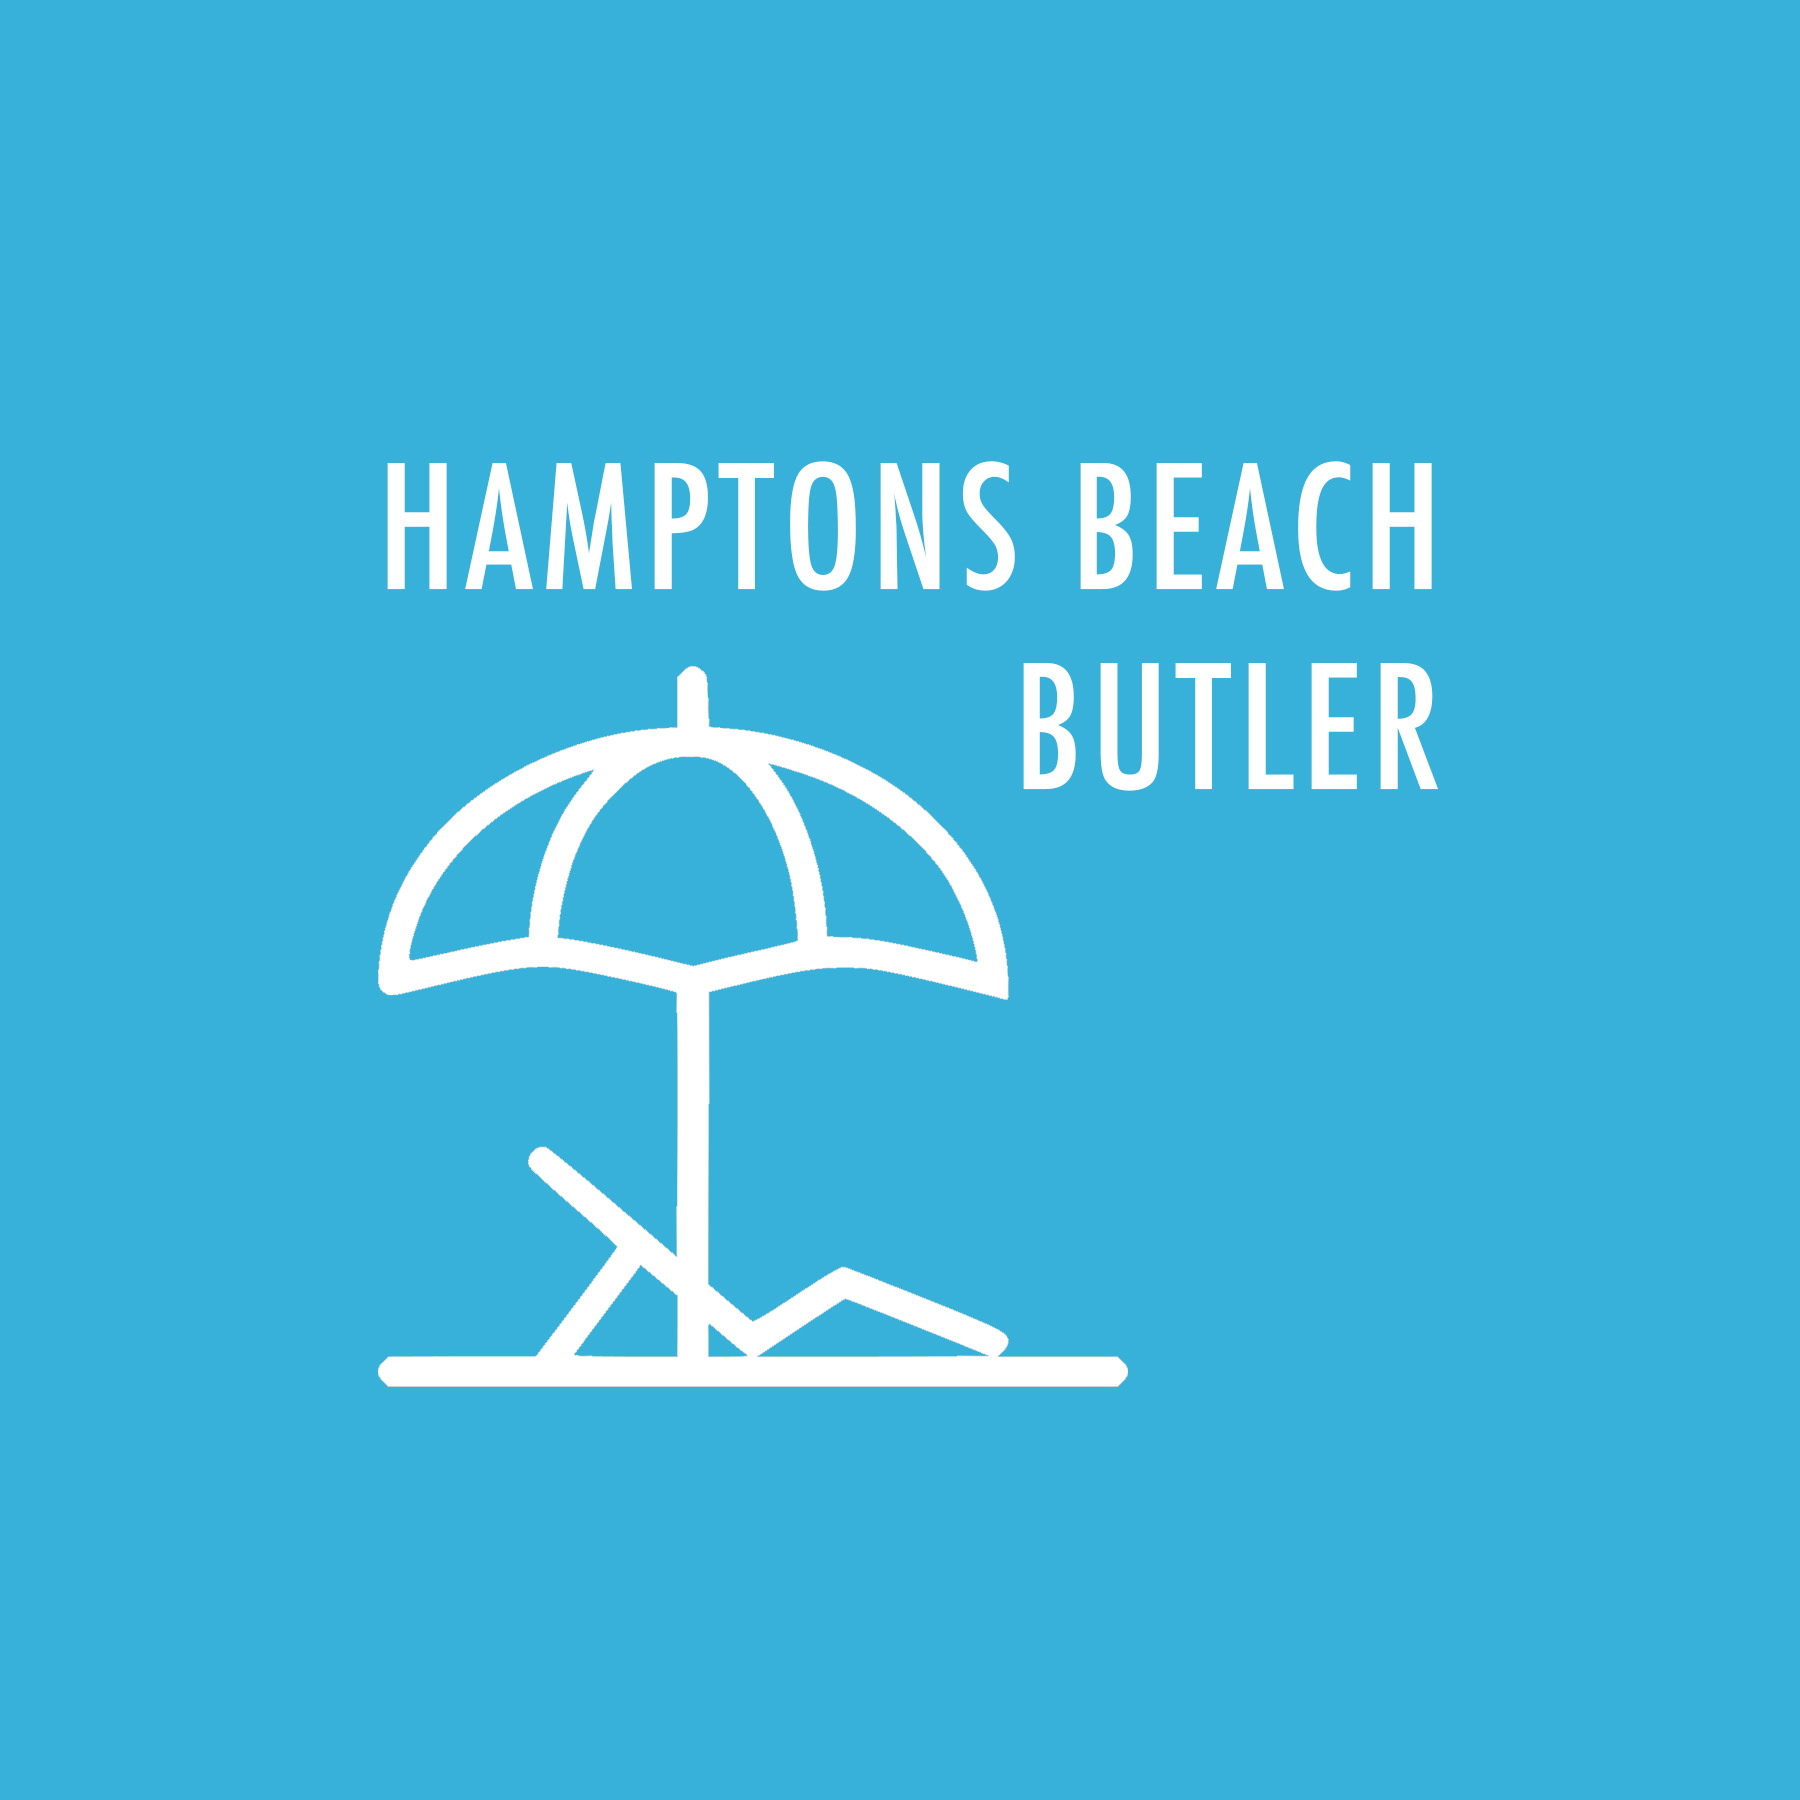 hamptons beach butler 2.jpg